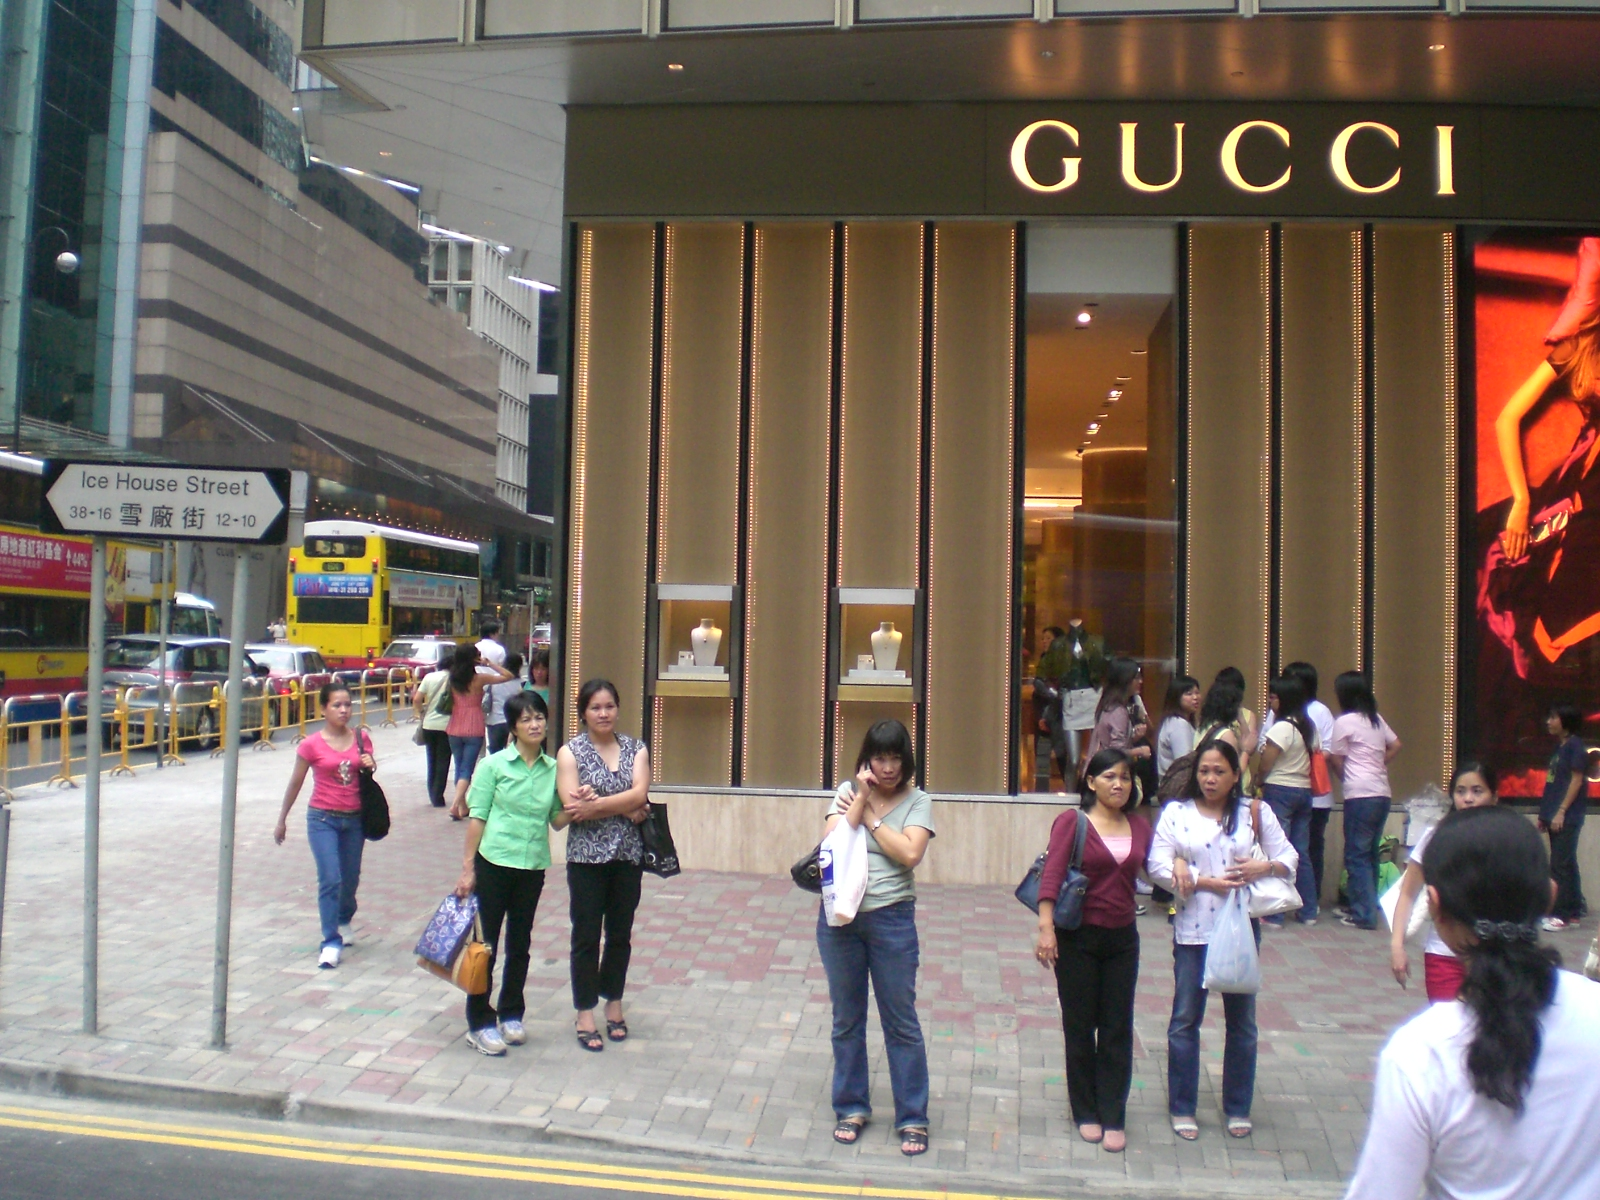 08dbd1c7b9 File:HK Central York House Ice House Street Gucci.jpg - Wikimedia ...